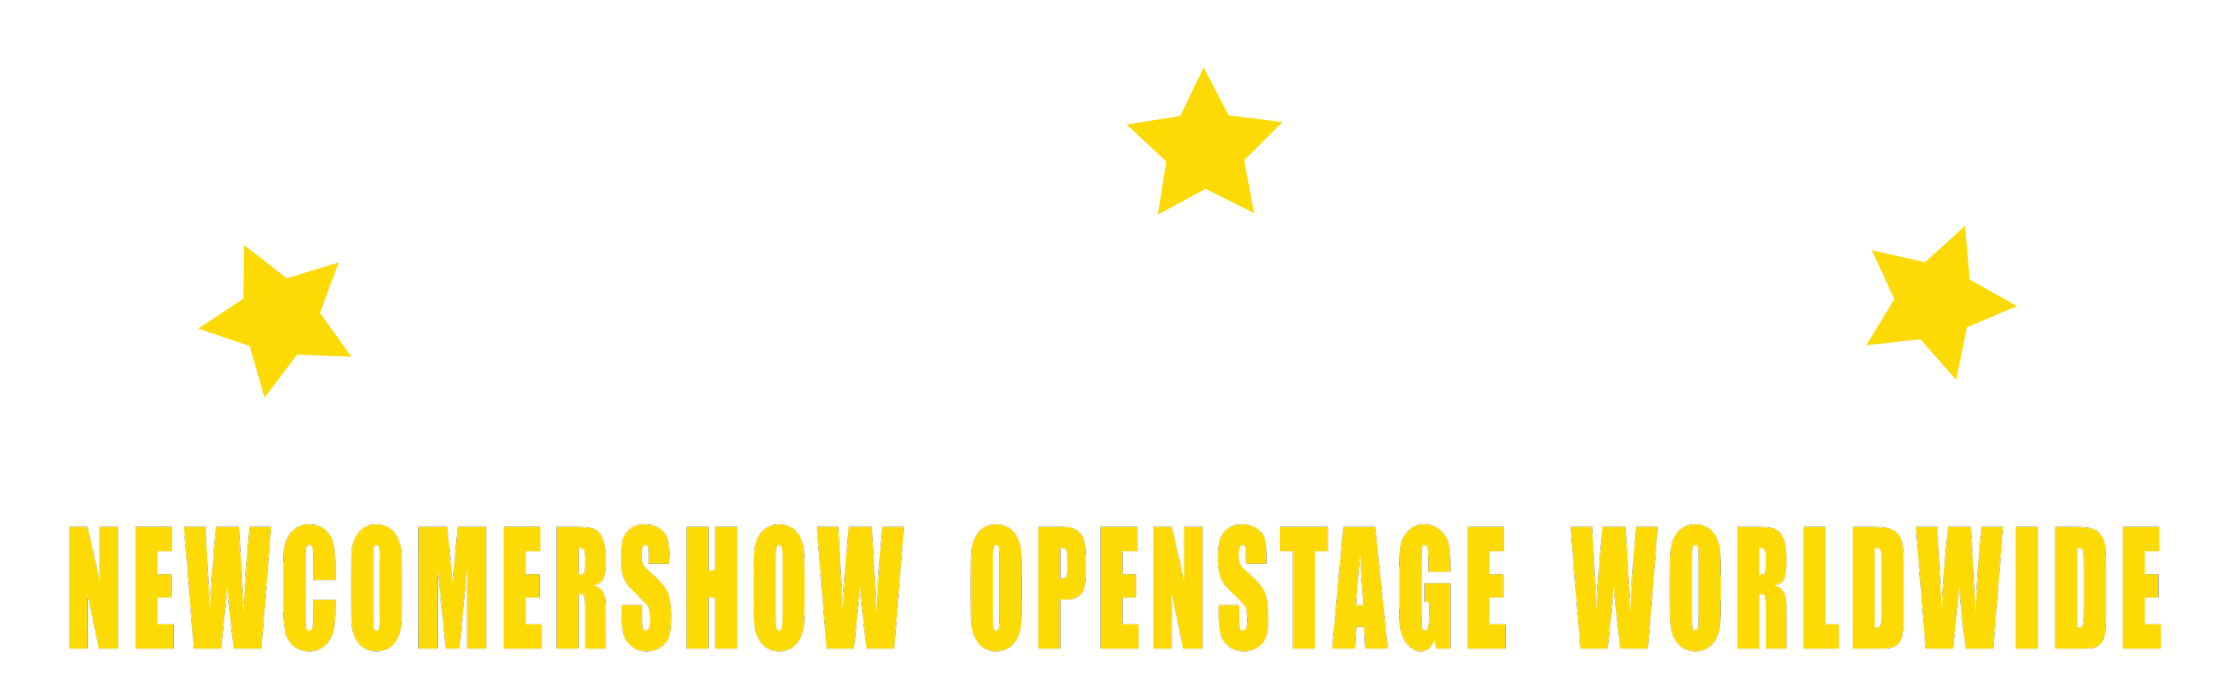 COMEDY N.O.W - Newcomershow Openstage Worldwide - YouTube Livestream 2018